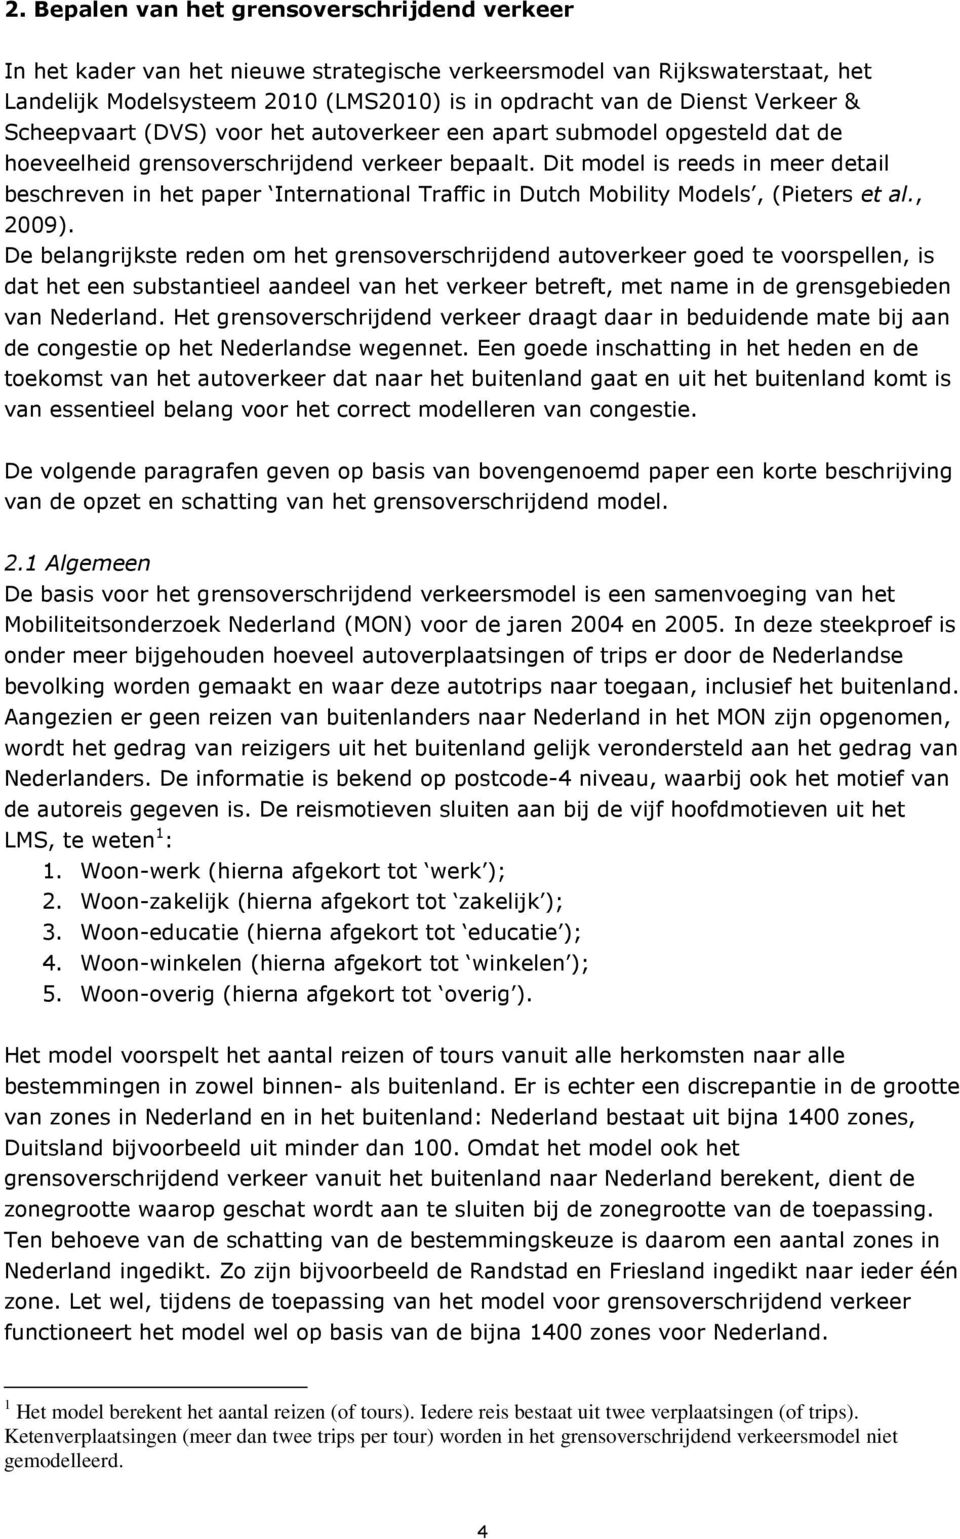 Dit model is reeds in meer detail beschreven in het paper International Traffic in Dutch Mobility Models, (Pieters et al., 2009).